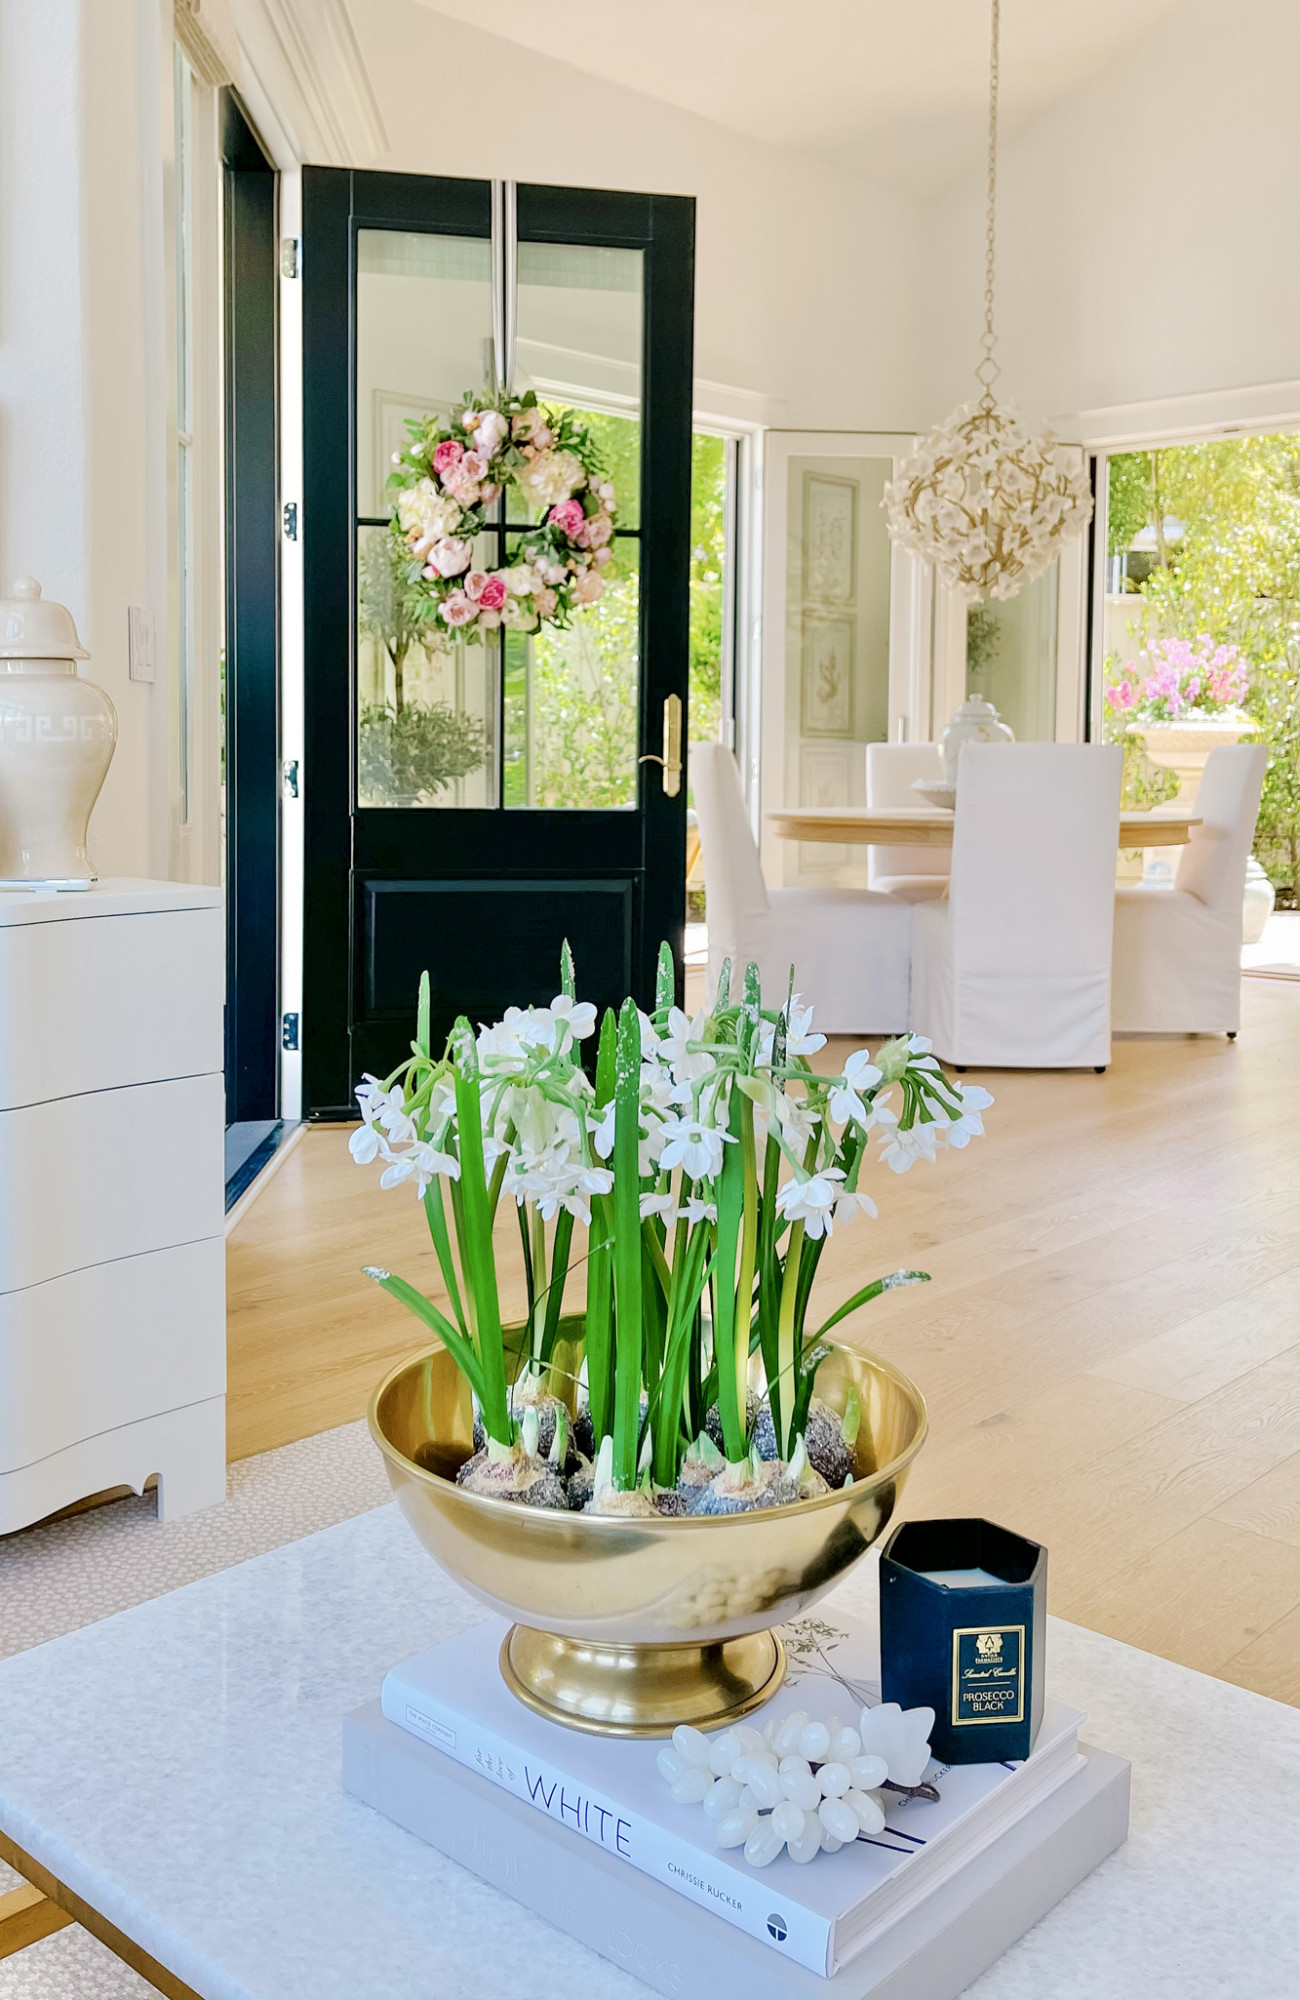 Tips on Getting Your Home Ready to Sell - How I prepared my house for listing.. all of my top few pieces of advice before putting your home on the market